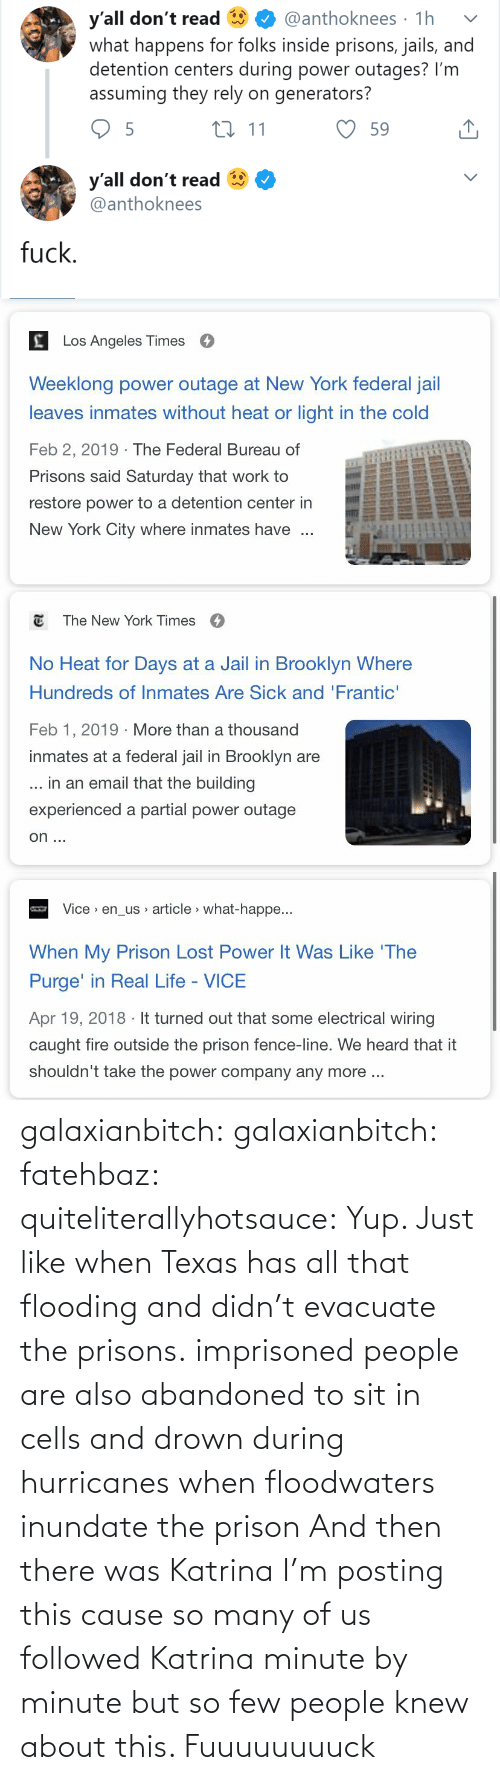 cells: y'all don't read  what happens for folks inside prisons, jails, and  detention centers during power outages? I'm  assuming they rely on generators?  @anthoknees · 1h  27 11  59  y'all don't read  @anthoknees  fuck.   Los Angeles Times  Weeklong power outage at New York federal jail  leaves inmates without heat or light in the cold  Feb 2, 2019 · The Federal Bureau of  Prisons said Saturday that work to  restore power to a detention center in  New York City where inmates have   E The New York Times  O  No Heat for Days at a Jail in Brooklyn Where  Hundreds of Inmates Are Sick and 'Frantic'  Feb 1, 2019 · More than a thousand  inmates at a federal jail in Brooklyn are  ... in an email that the building  experienced a partial power outage  on ...   Vice > en_us article > what-happe...  When My Prison Lost Power It Was Like 'The  Purge' in Real Life - VICE  Apr 19, 2018 · It turned out that some electrical wiring  caught fire outside the prison fence-line. We heard that it  shouldn't take the power company any more .. galaxianbitch: galaxianbitch:   fatehbaz:  quiteliterallyhotsauce:   Yup. Just like when Texas has all that flooding and didn't evacuate the prisons.   imprisoned people are also abandoned to sit in cells and drown during hurricanes when floodwaters inundate the prison   And then there was Katrina        I'm posting this cause so many of us followed Katrina minute by minute but so few people knew about this.    Fuuuuuuuuck